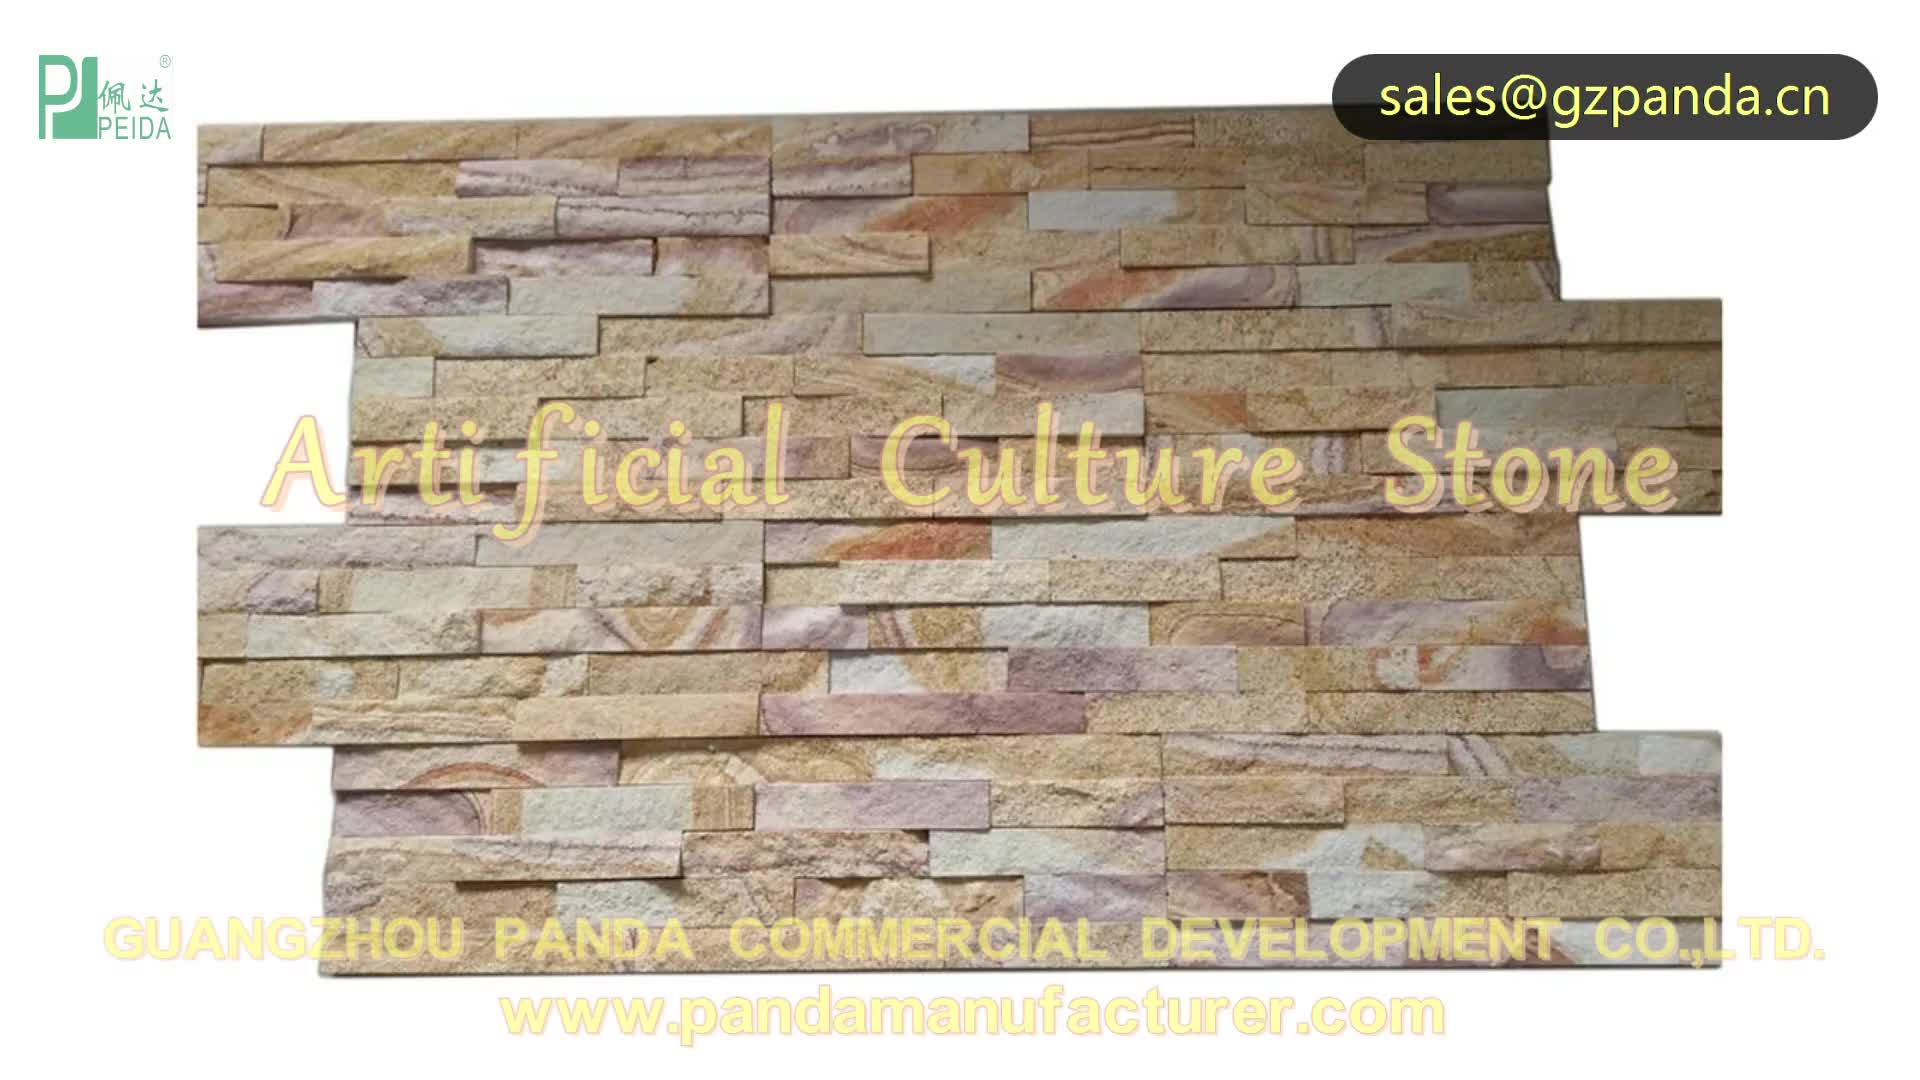 Decoration Culture Stone Mold Manufacturers Artificial Culture Stone